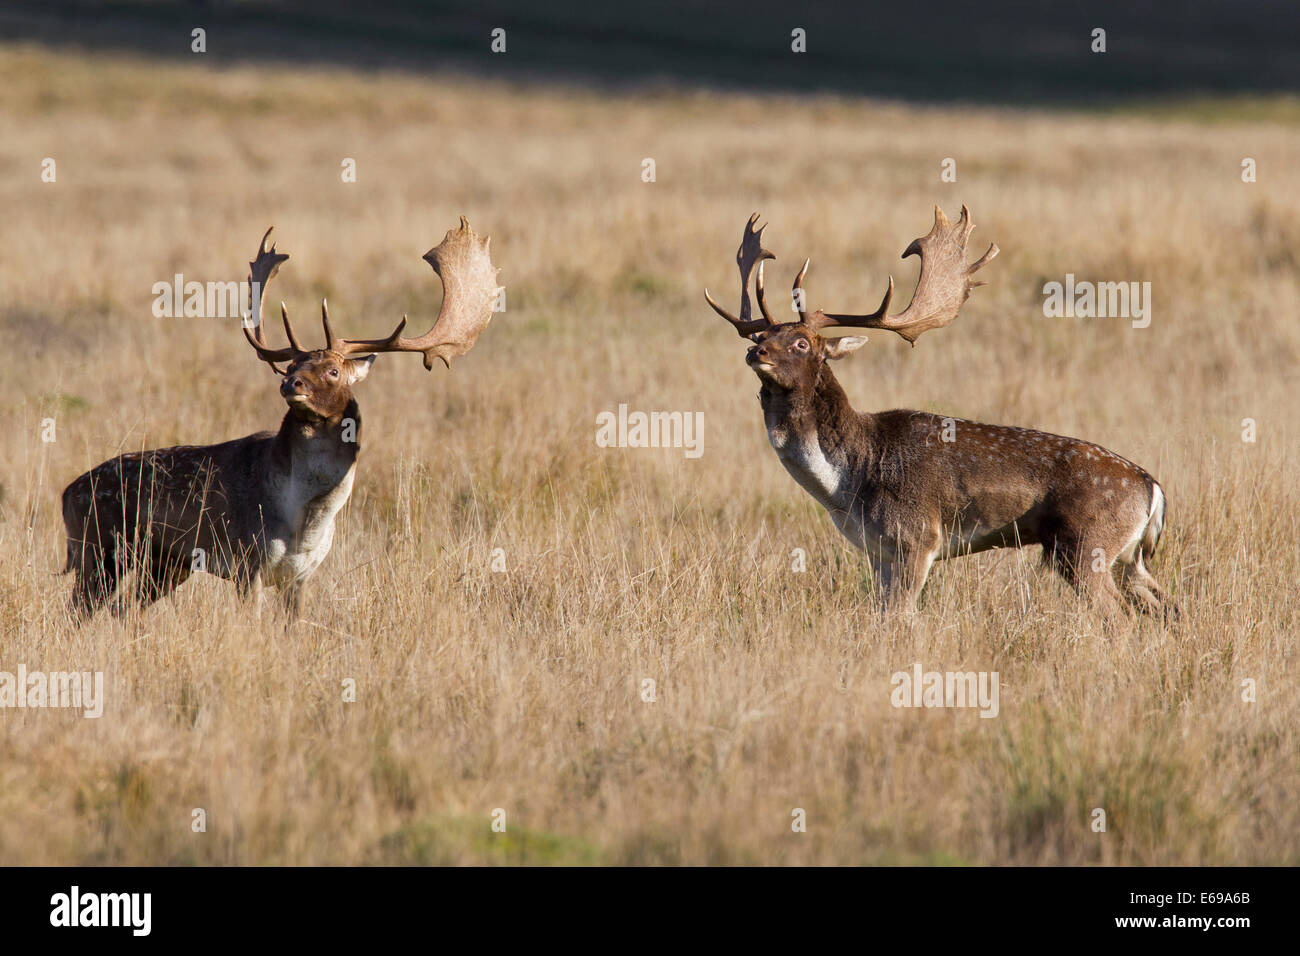 Two Fallow deer (Dama dama) bucks sizing each other up before fighting during the rutting season in autumn - Stock Image